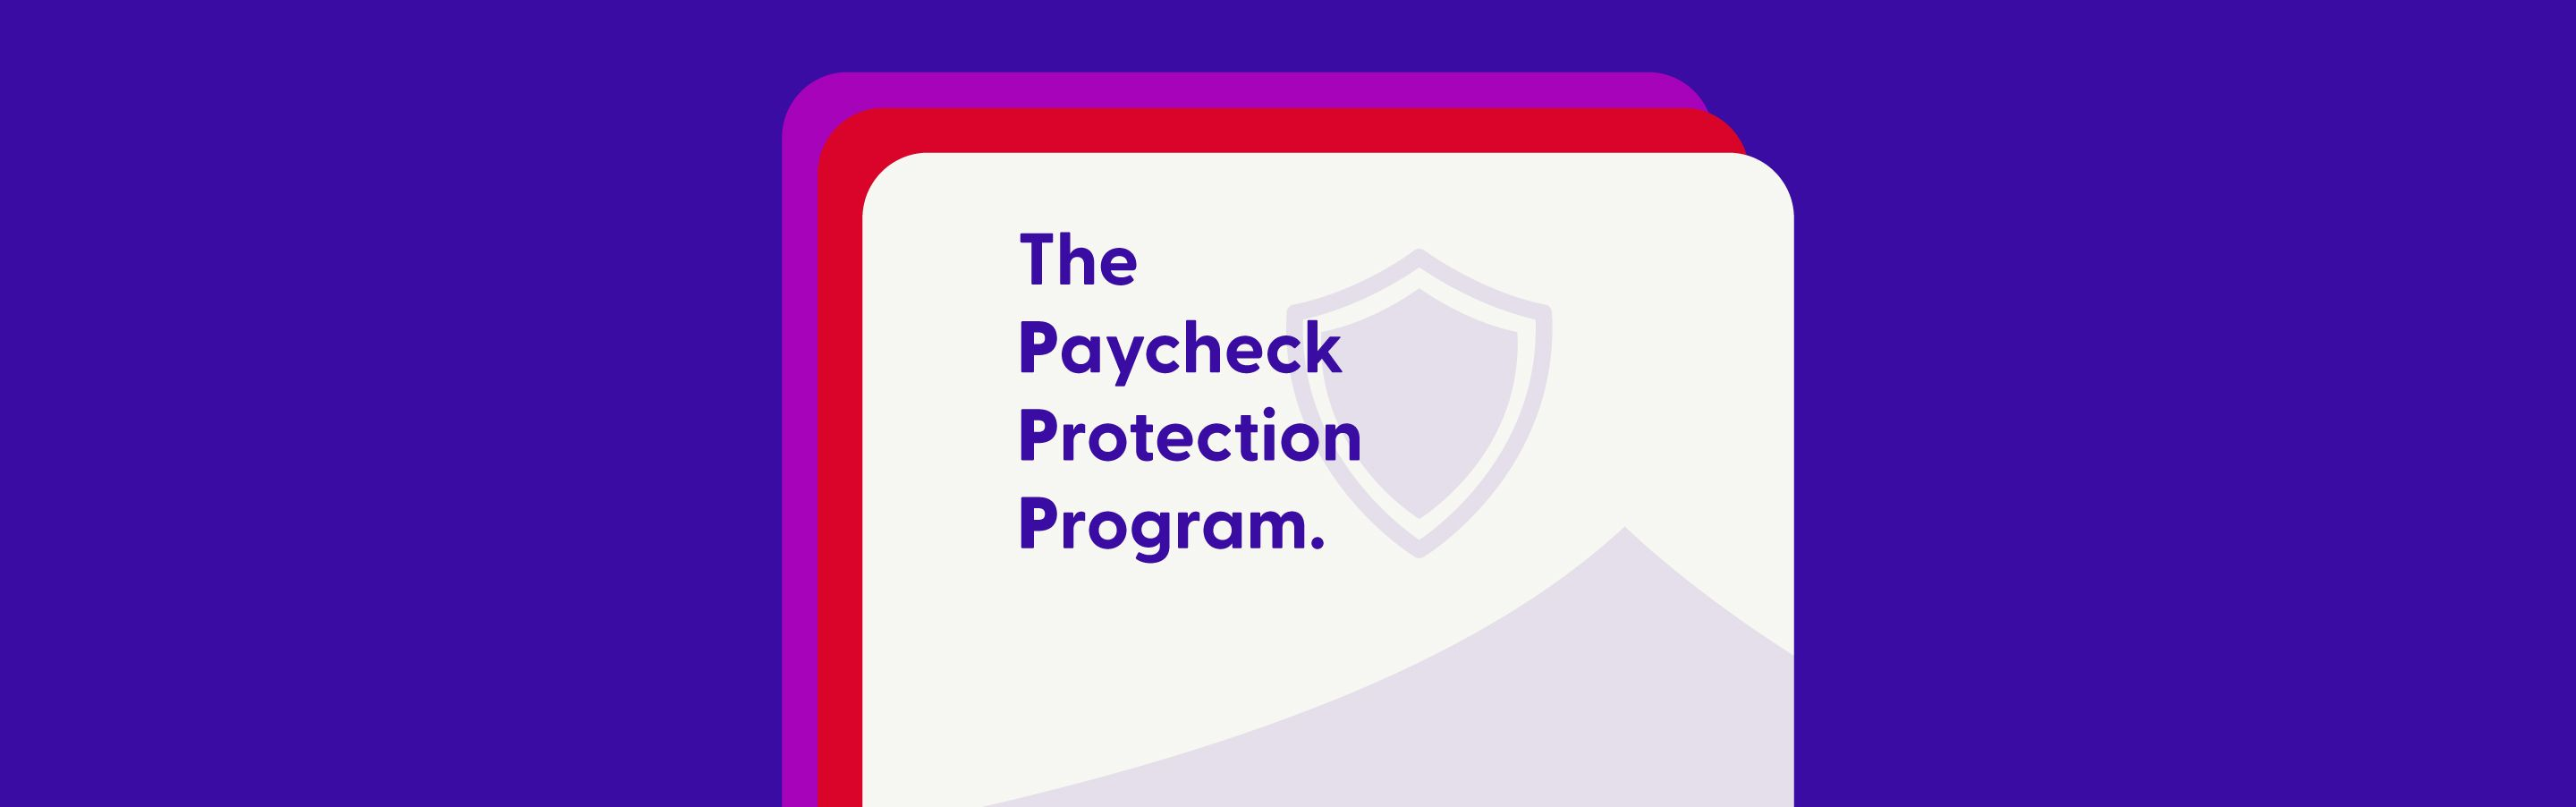 The Paycheck Protection Program words on a white paper with a purple background